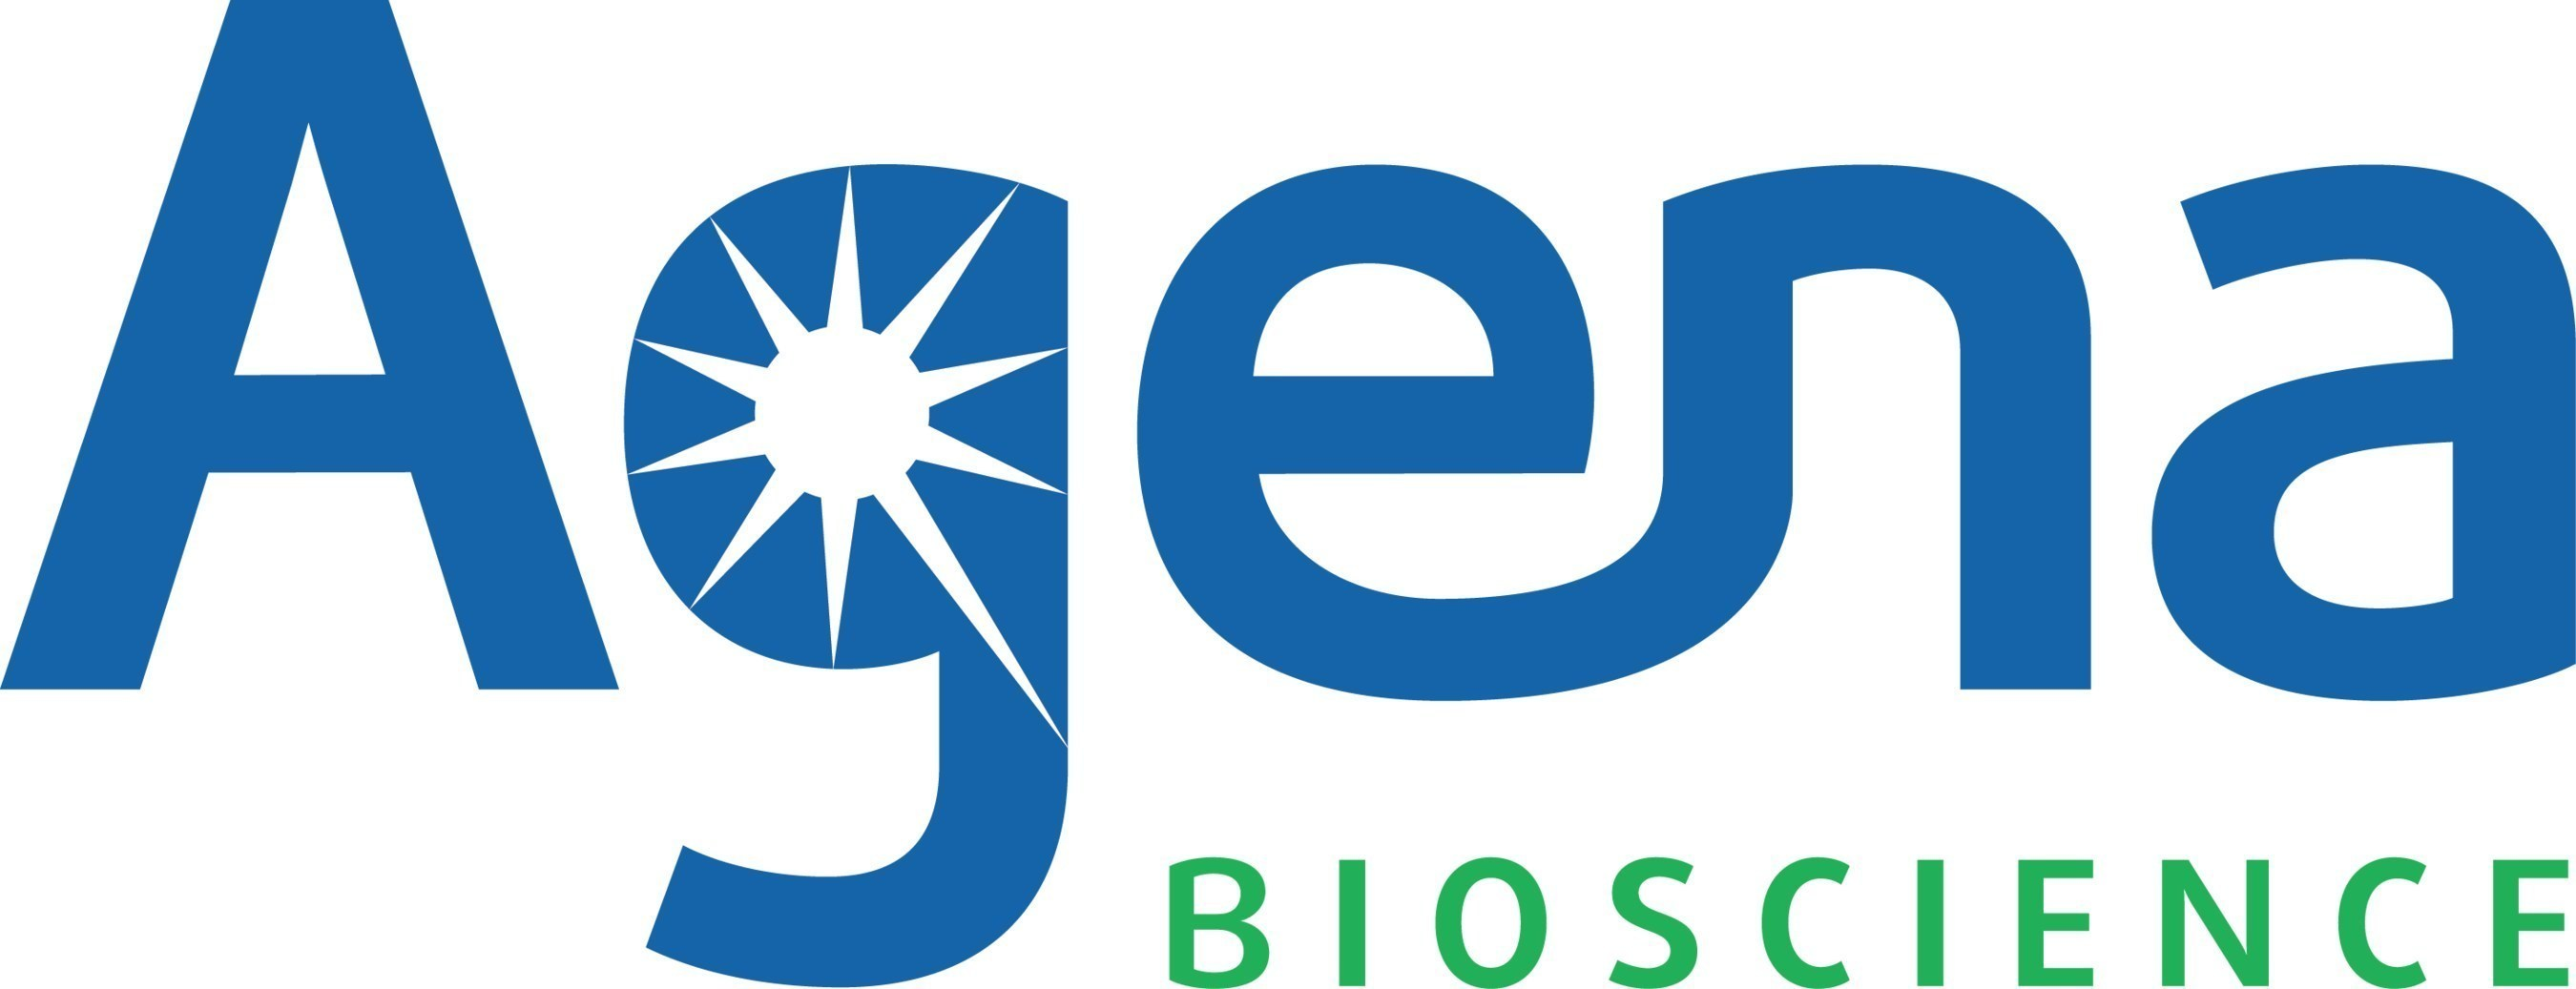 Agena Bioscience is a San Diego, CA based life sciences and clinical diagnostics company that offers the ...